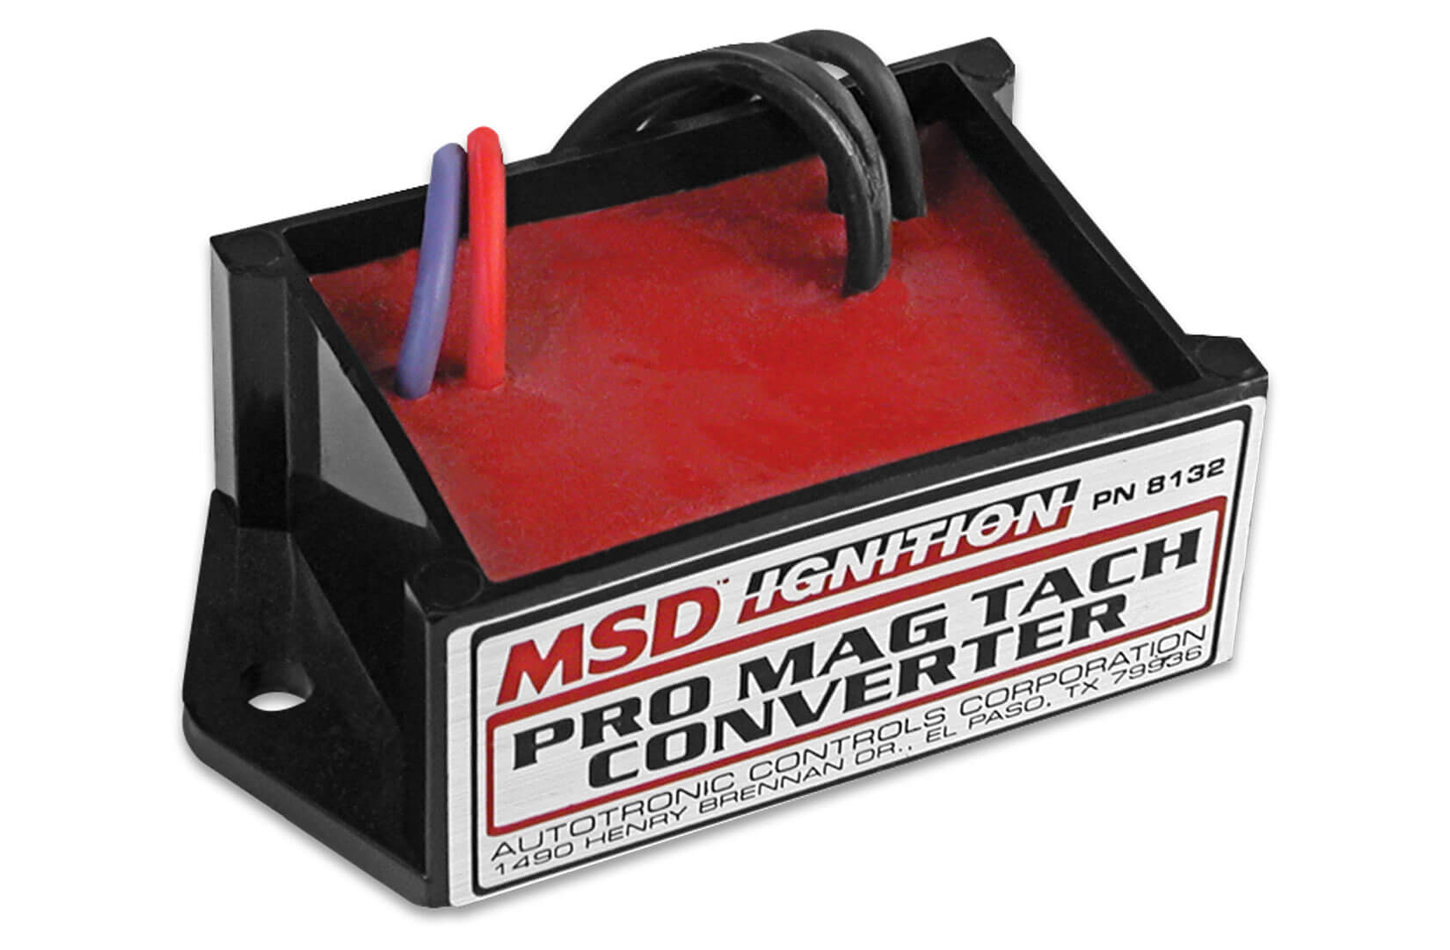 MSD Ignition 8132MSD Tachometer Adapter, Magneto, MSD Pro Mag, Each